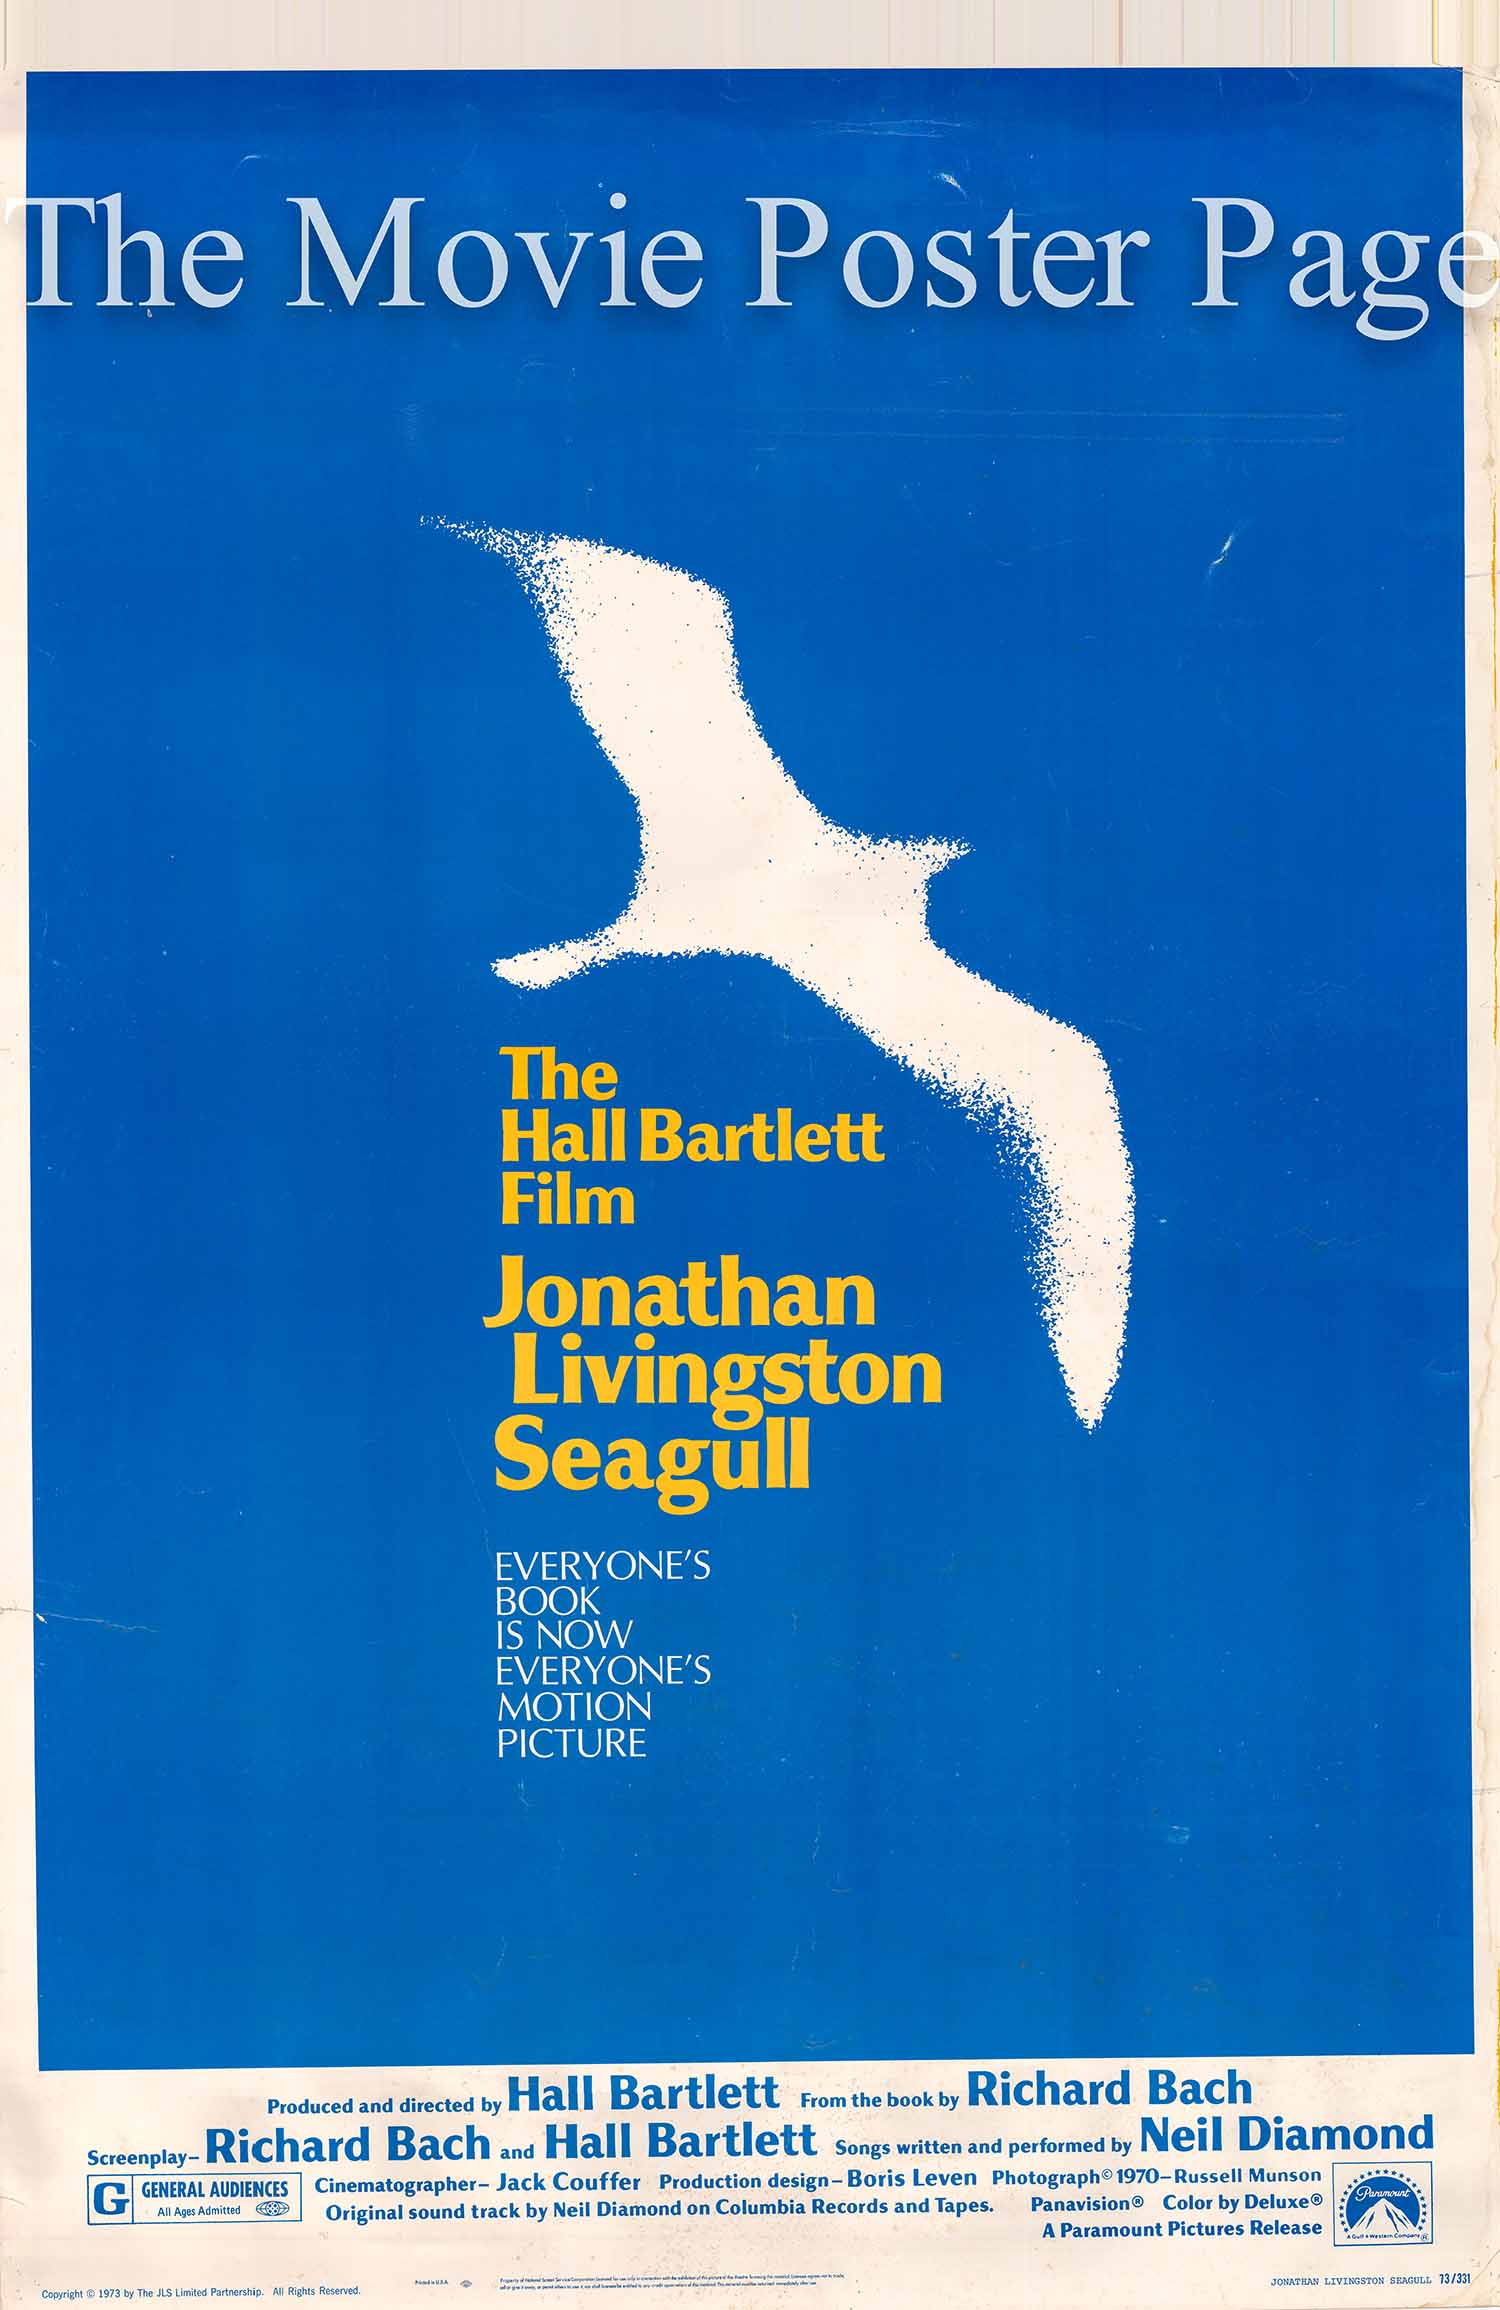 Pictured is a US 40x60 promotional poster for the 1973 Hall Bartlett film Jonathan Livingston Seagull starring James Franciscus as the voice of the gull.